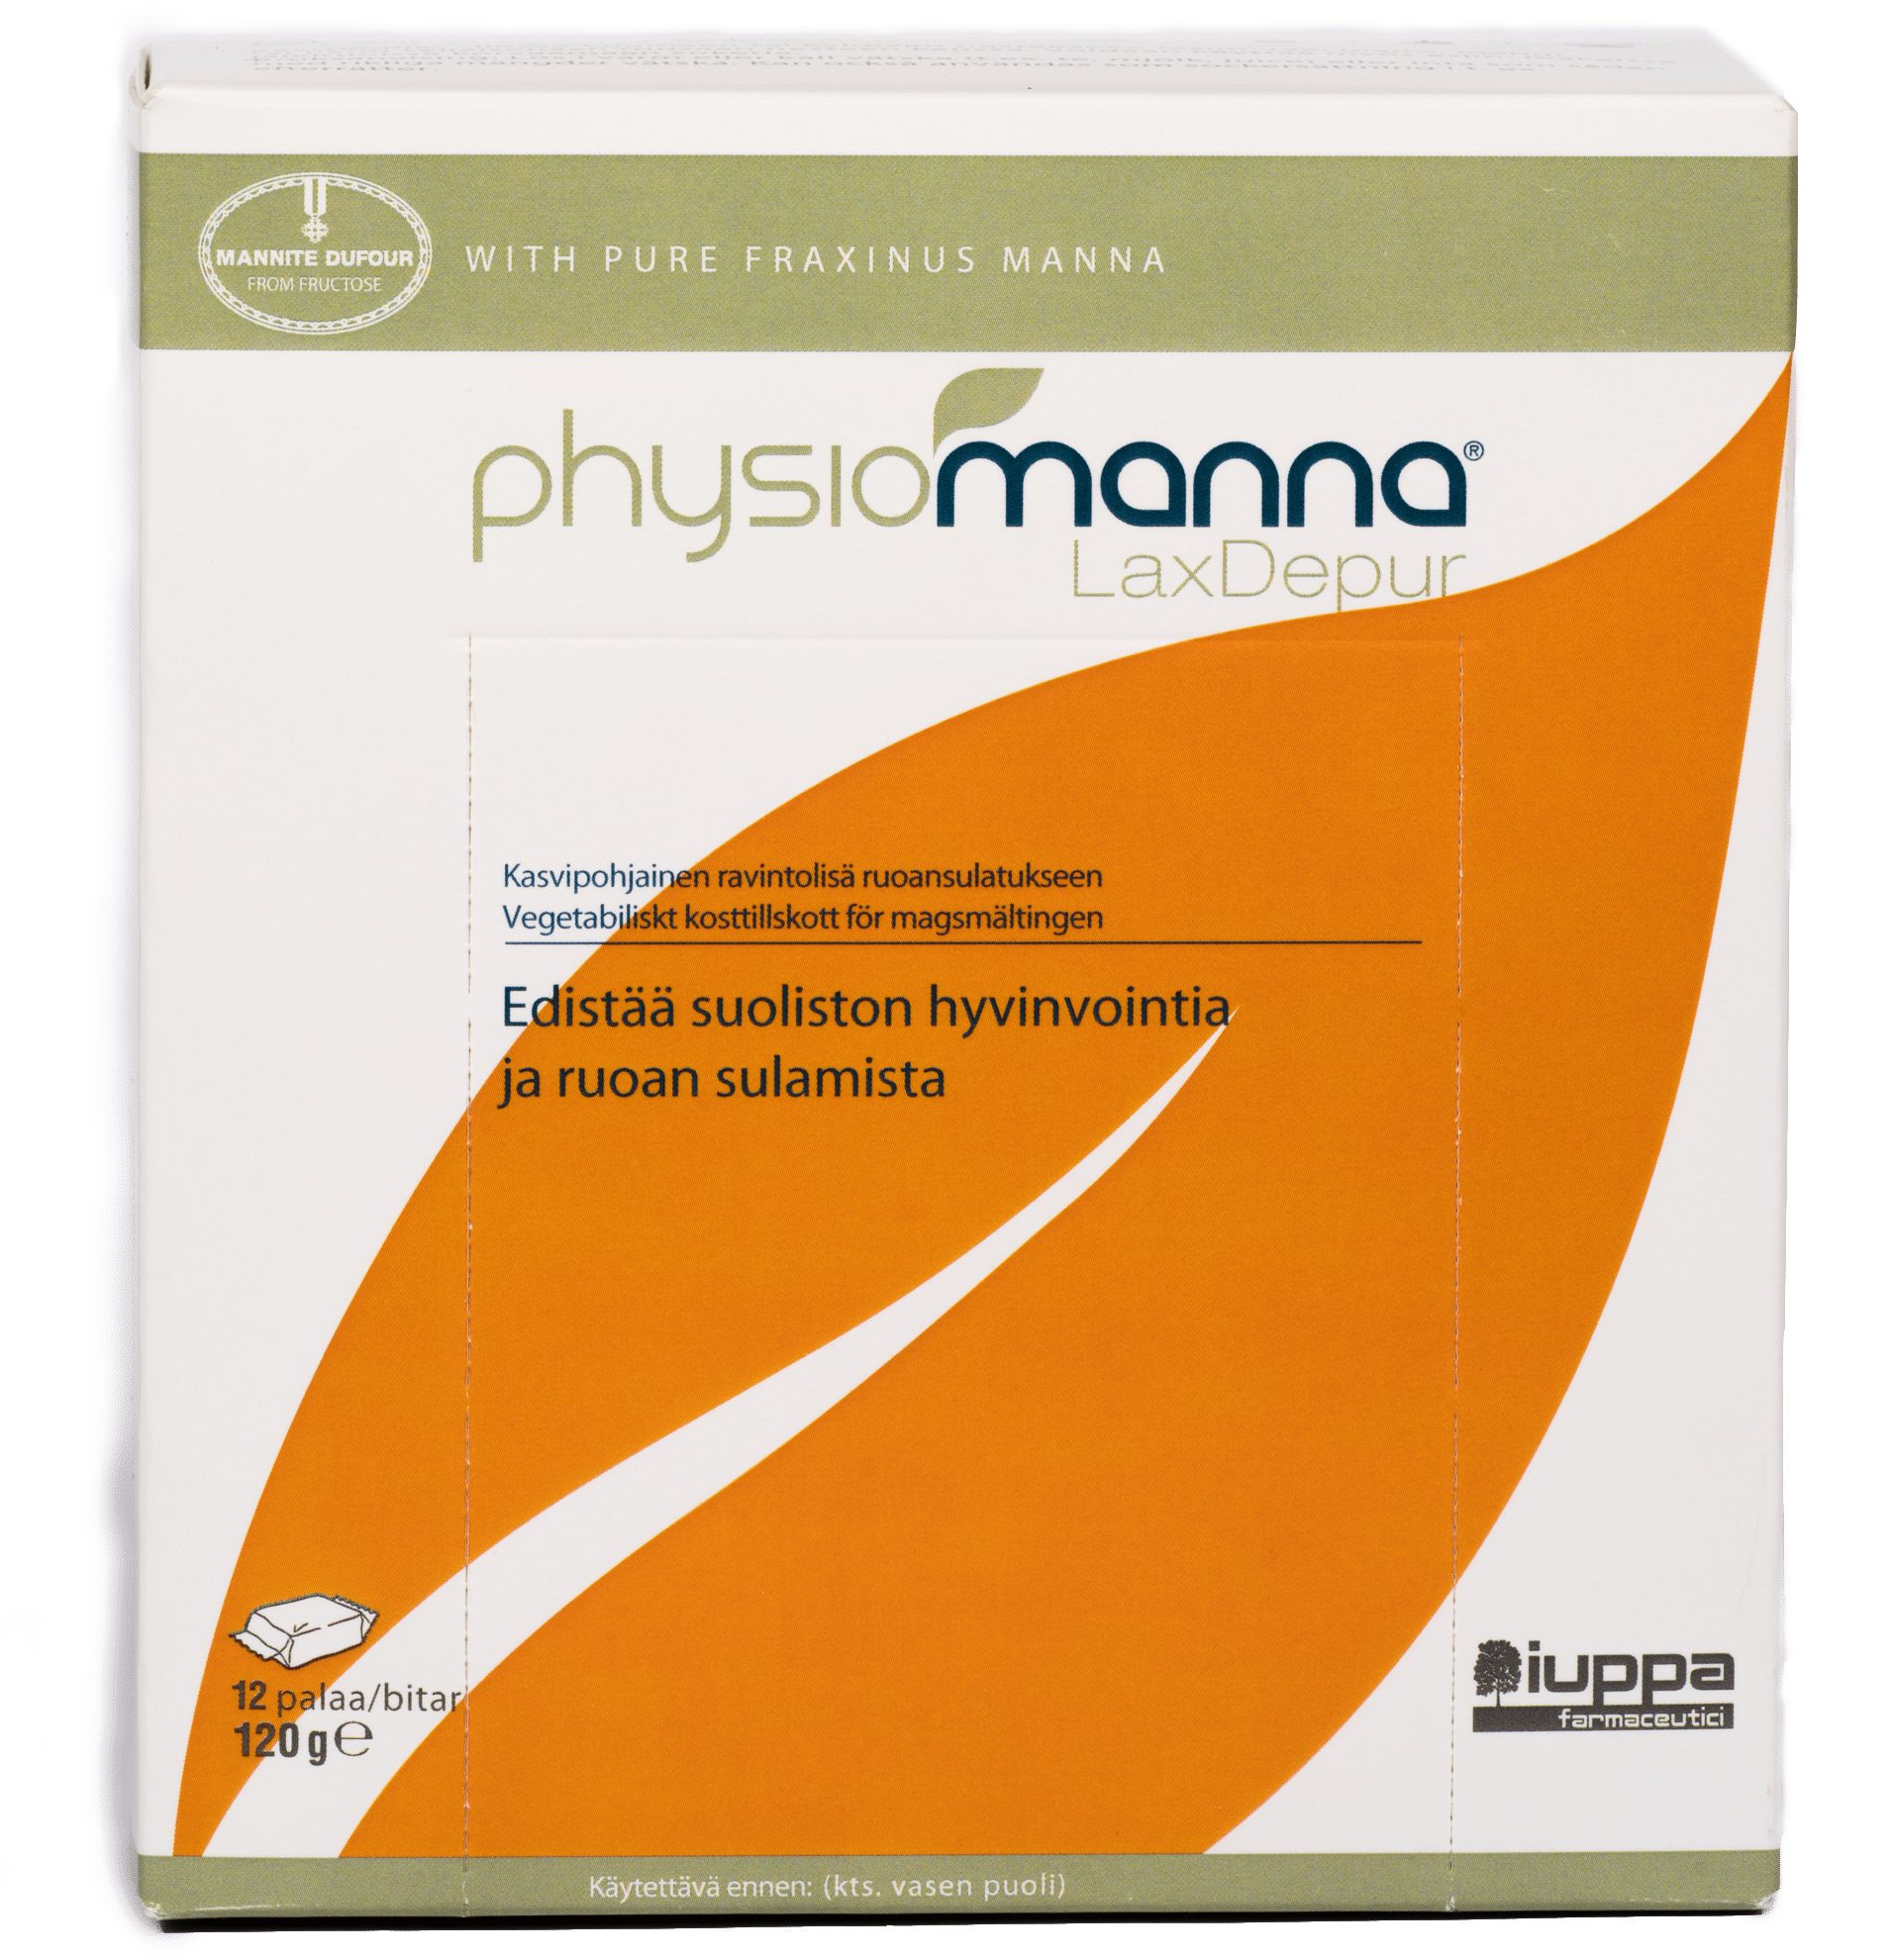 Physiomanna® LaxDepur